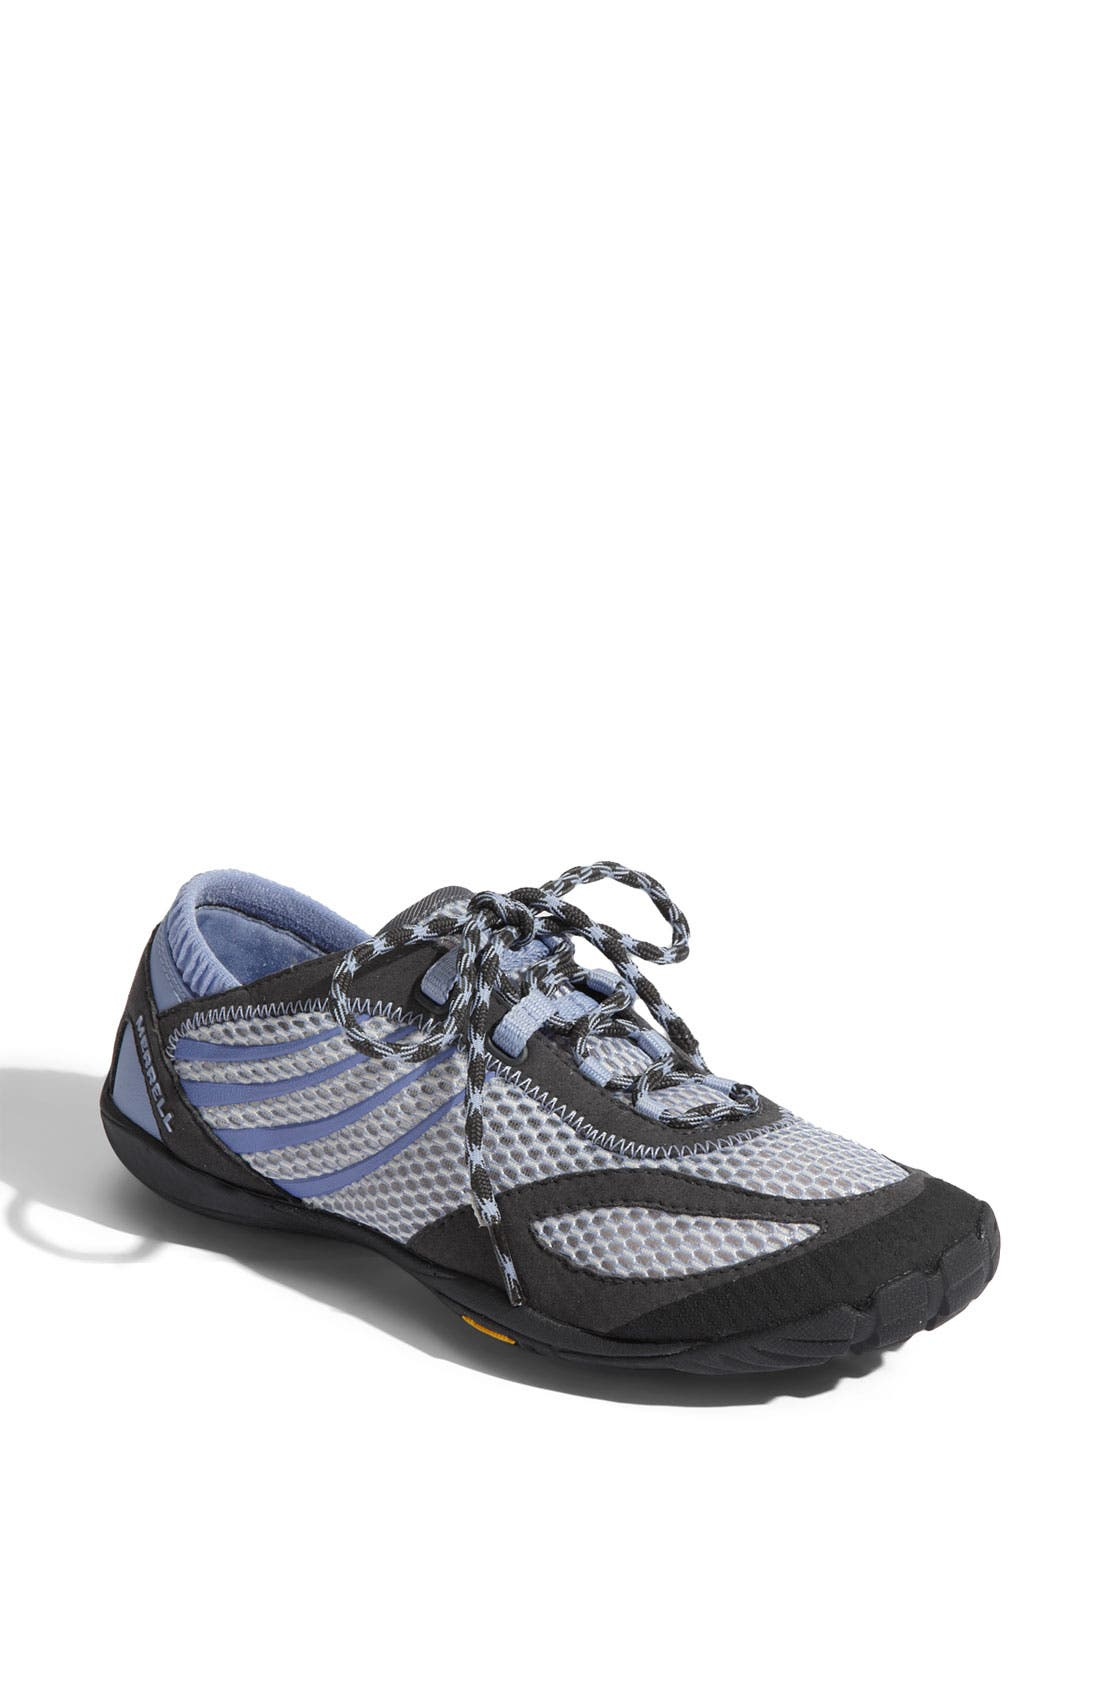 Alternate Image 1 Selected - Merrell 'Pace Minimal' Running Shoe (Women)